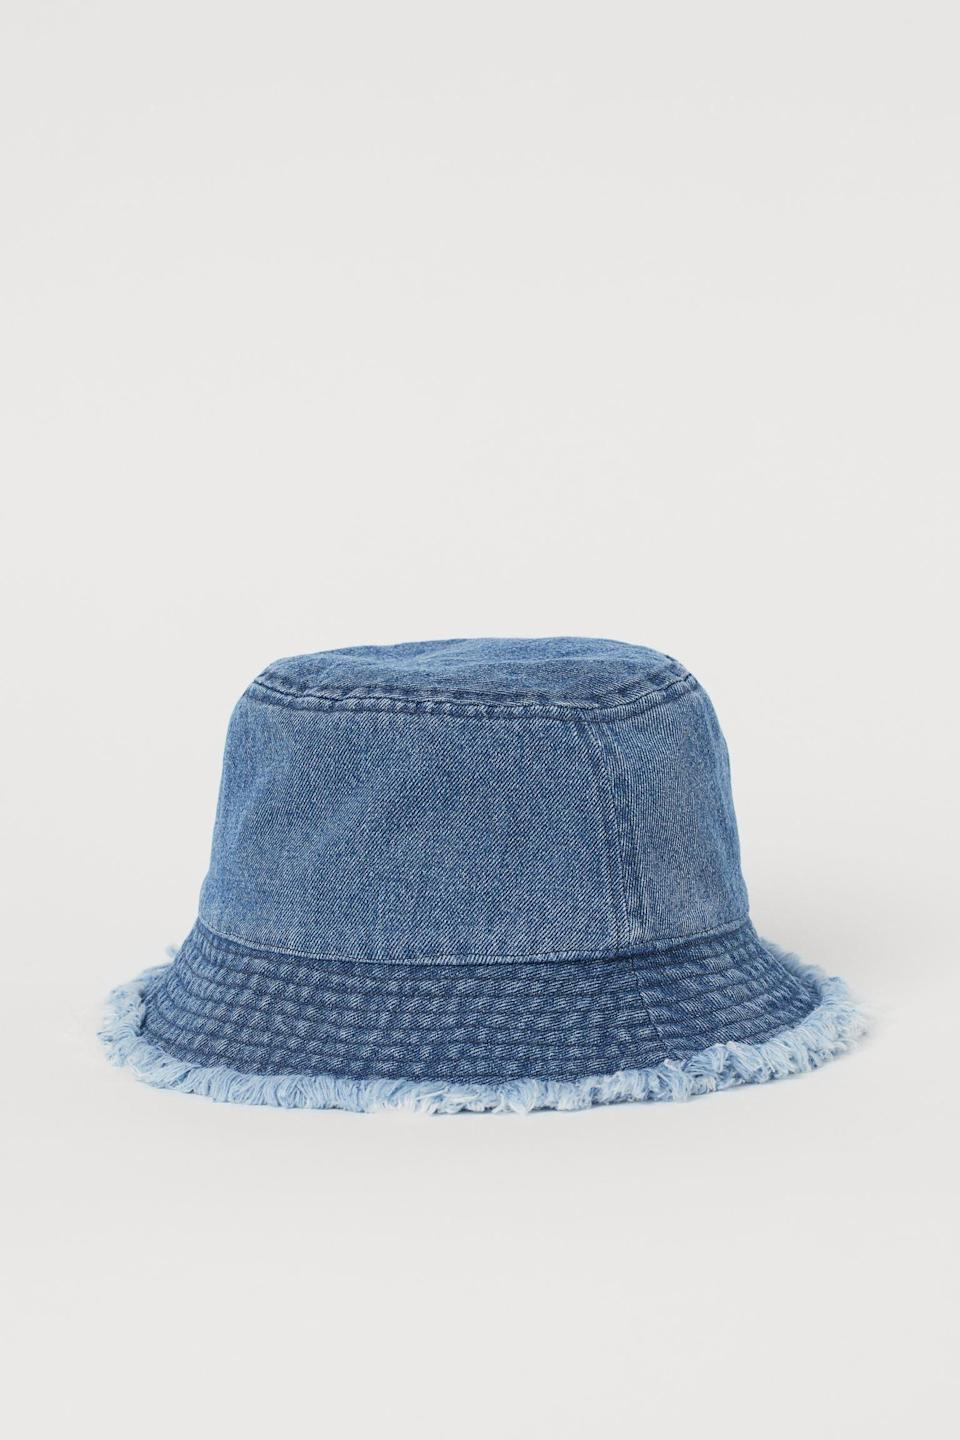 <p>Wear this <span>H&amp;M Frayed-edge Bucket Hat</span> ($10) with a full denim look for a statement monochrome outfit.</p>